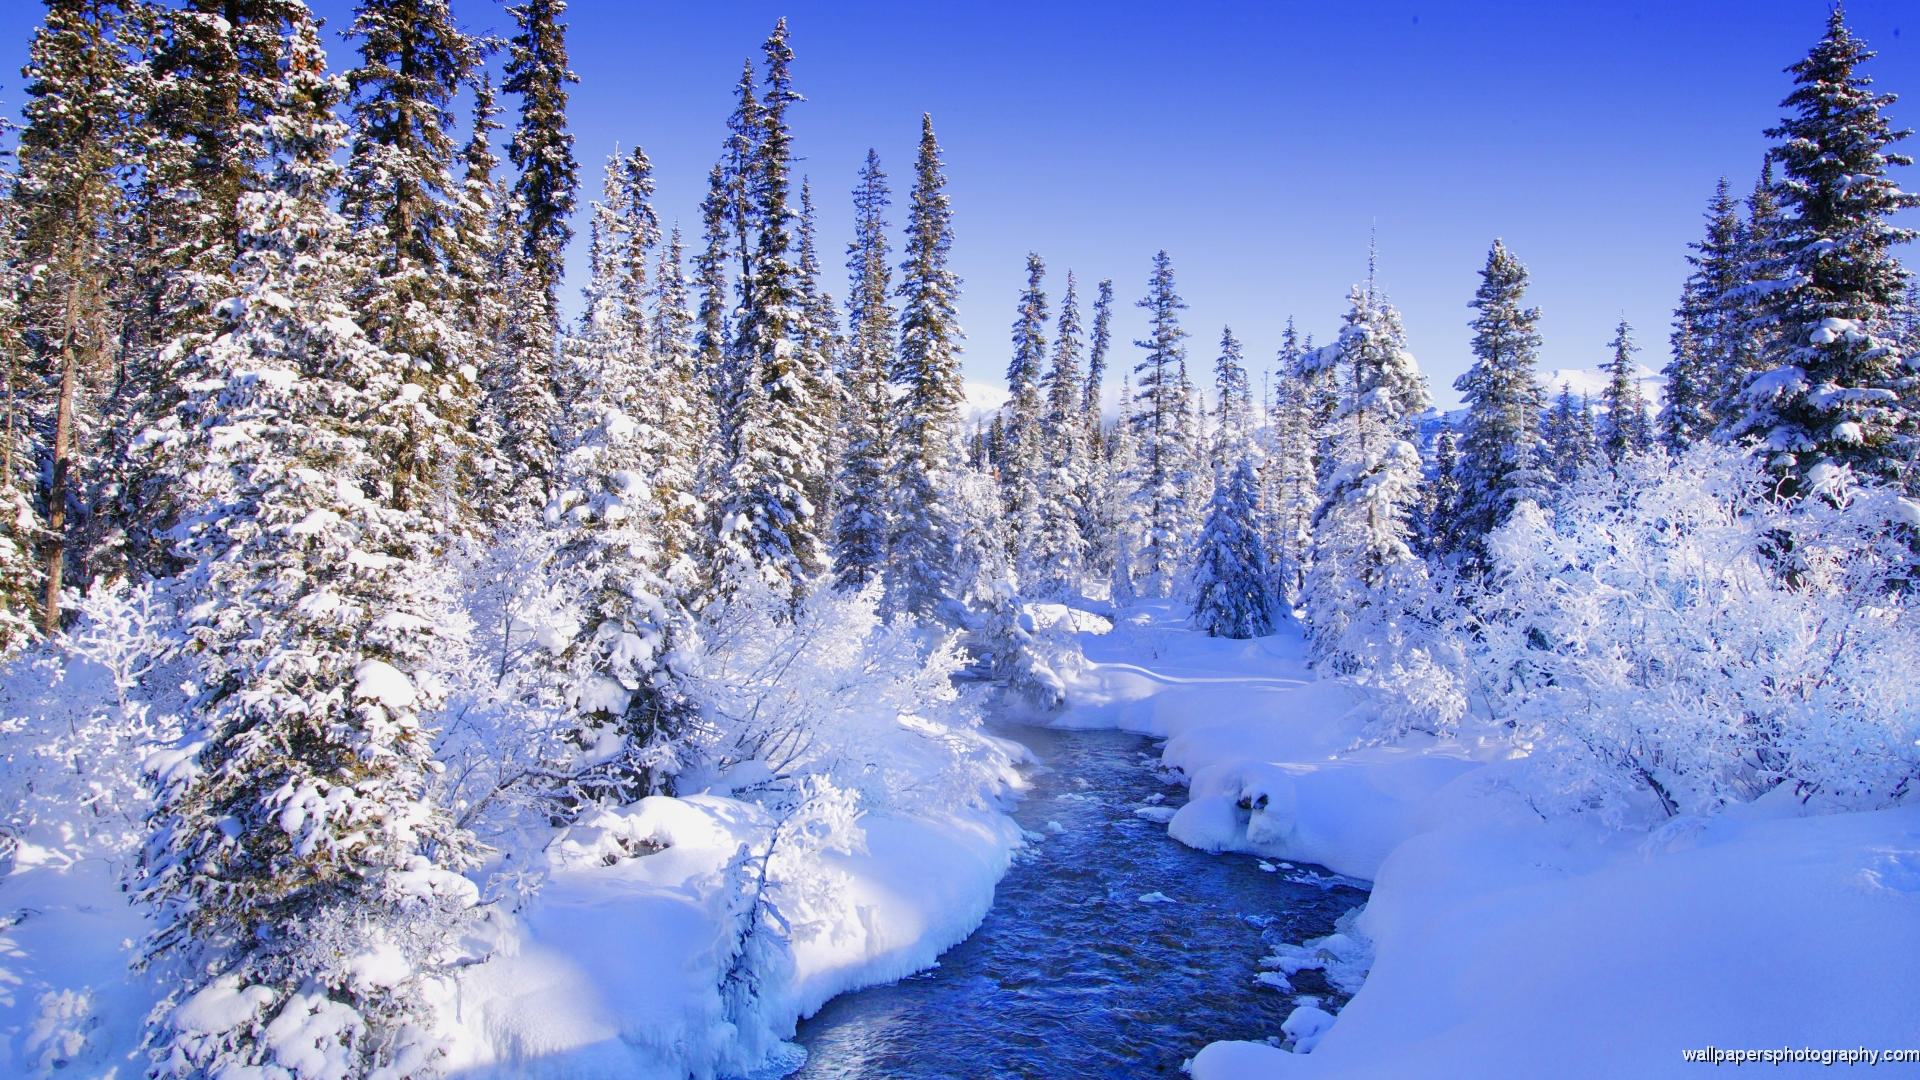 Wallpaper For Android Winter Scenes   HD Nature 1920x1080